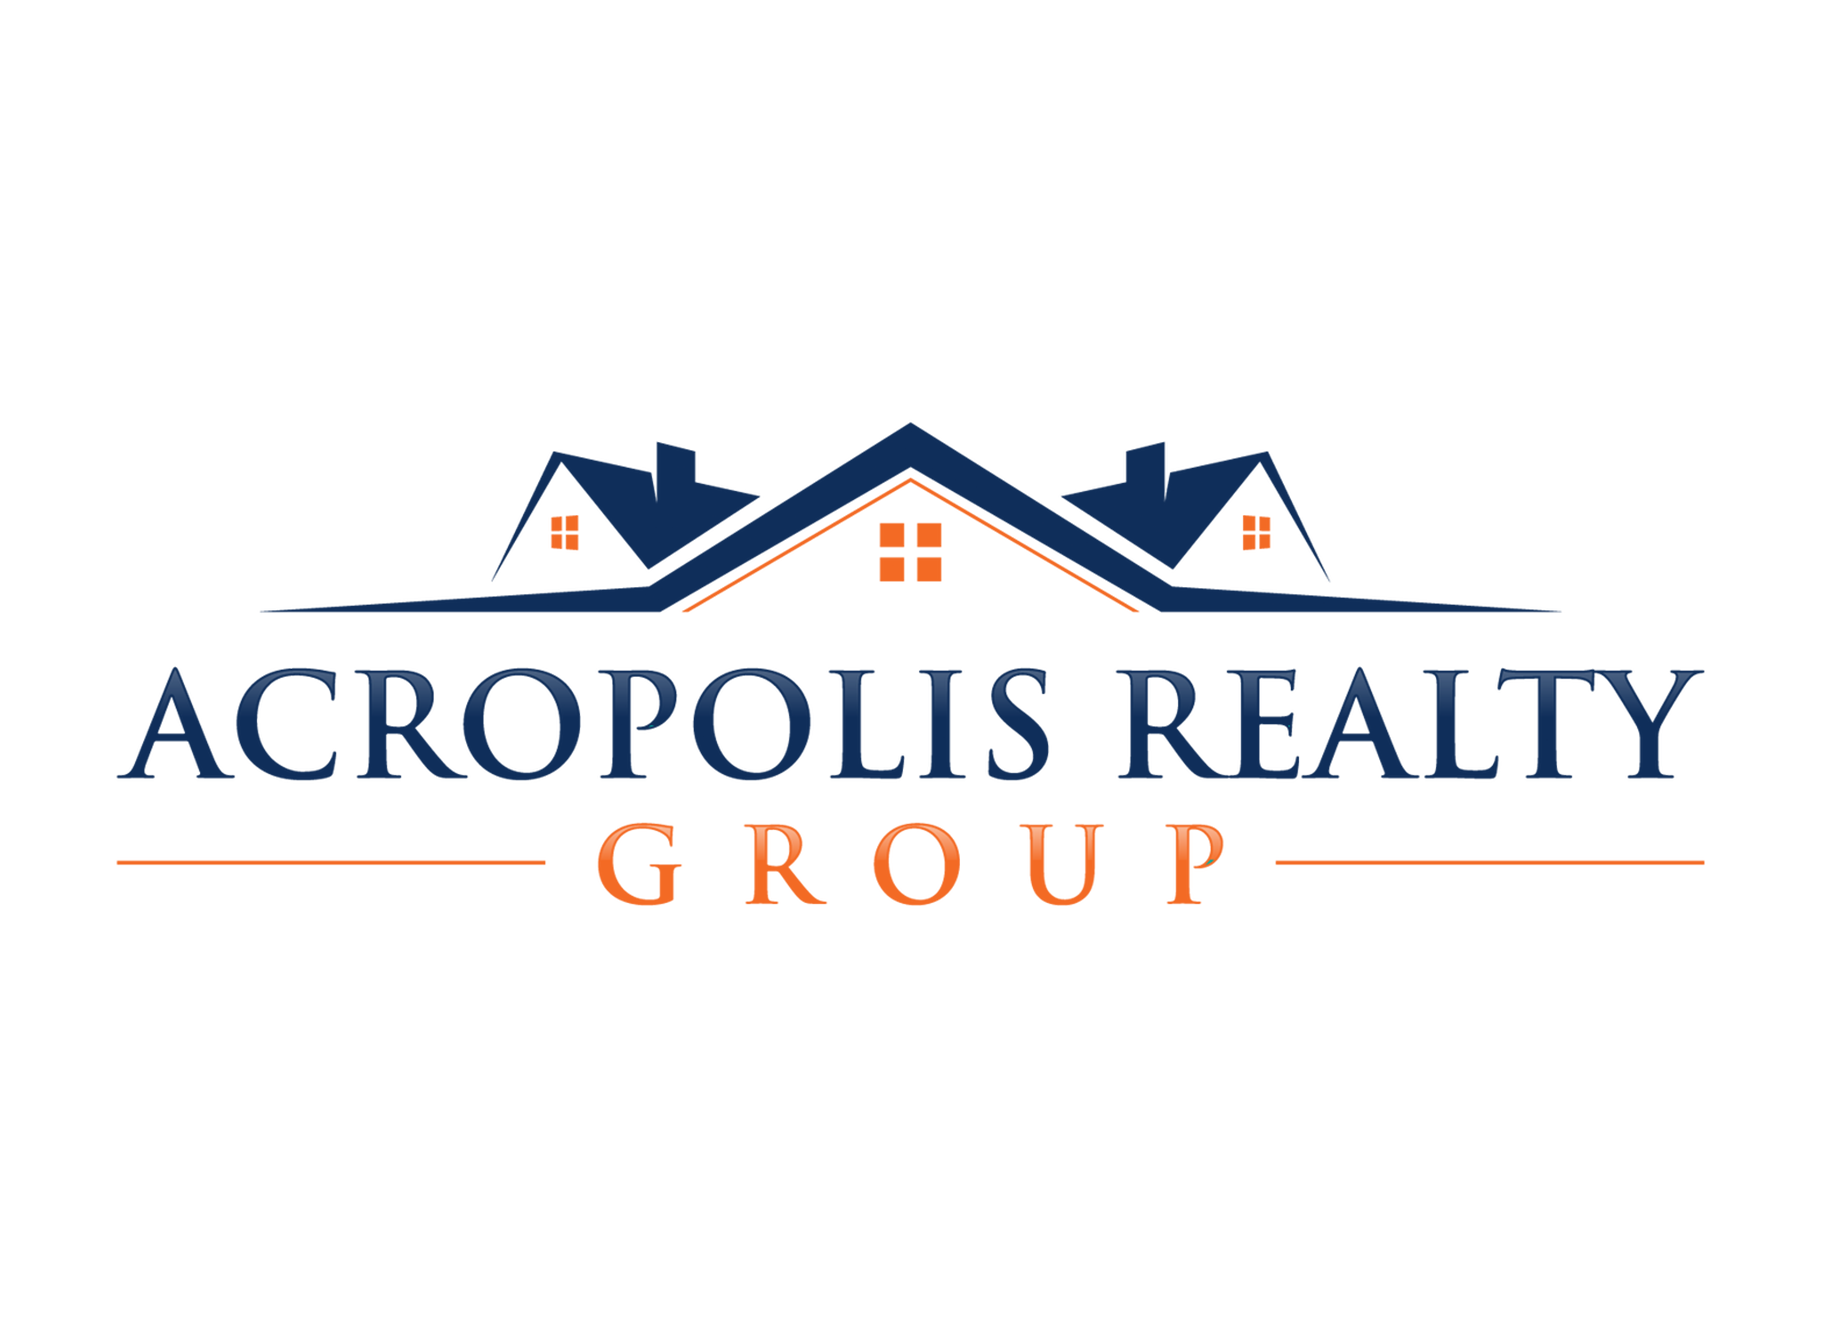 Acropolis Realty Group LLC